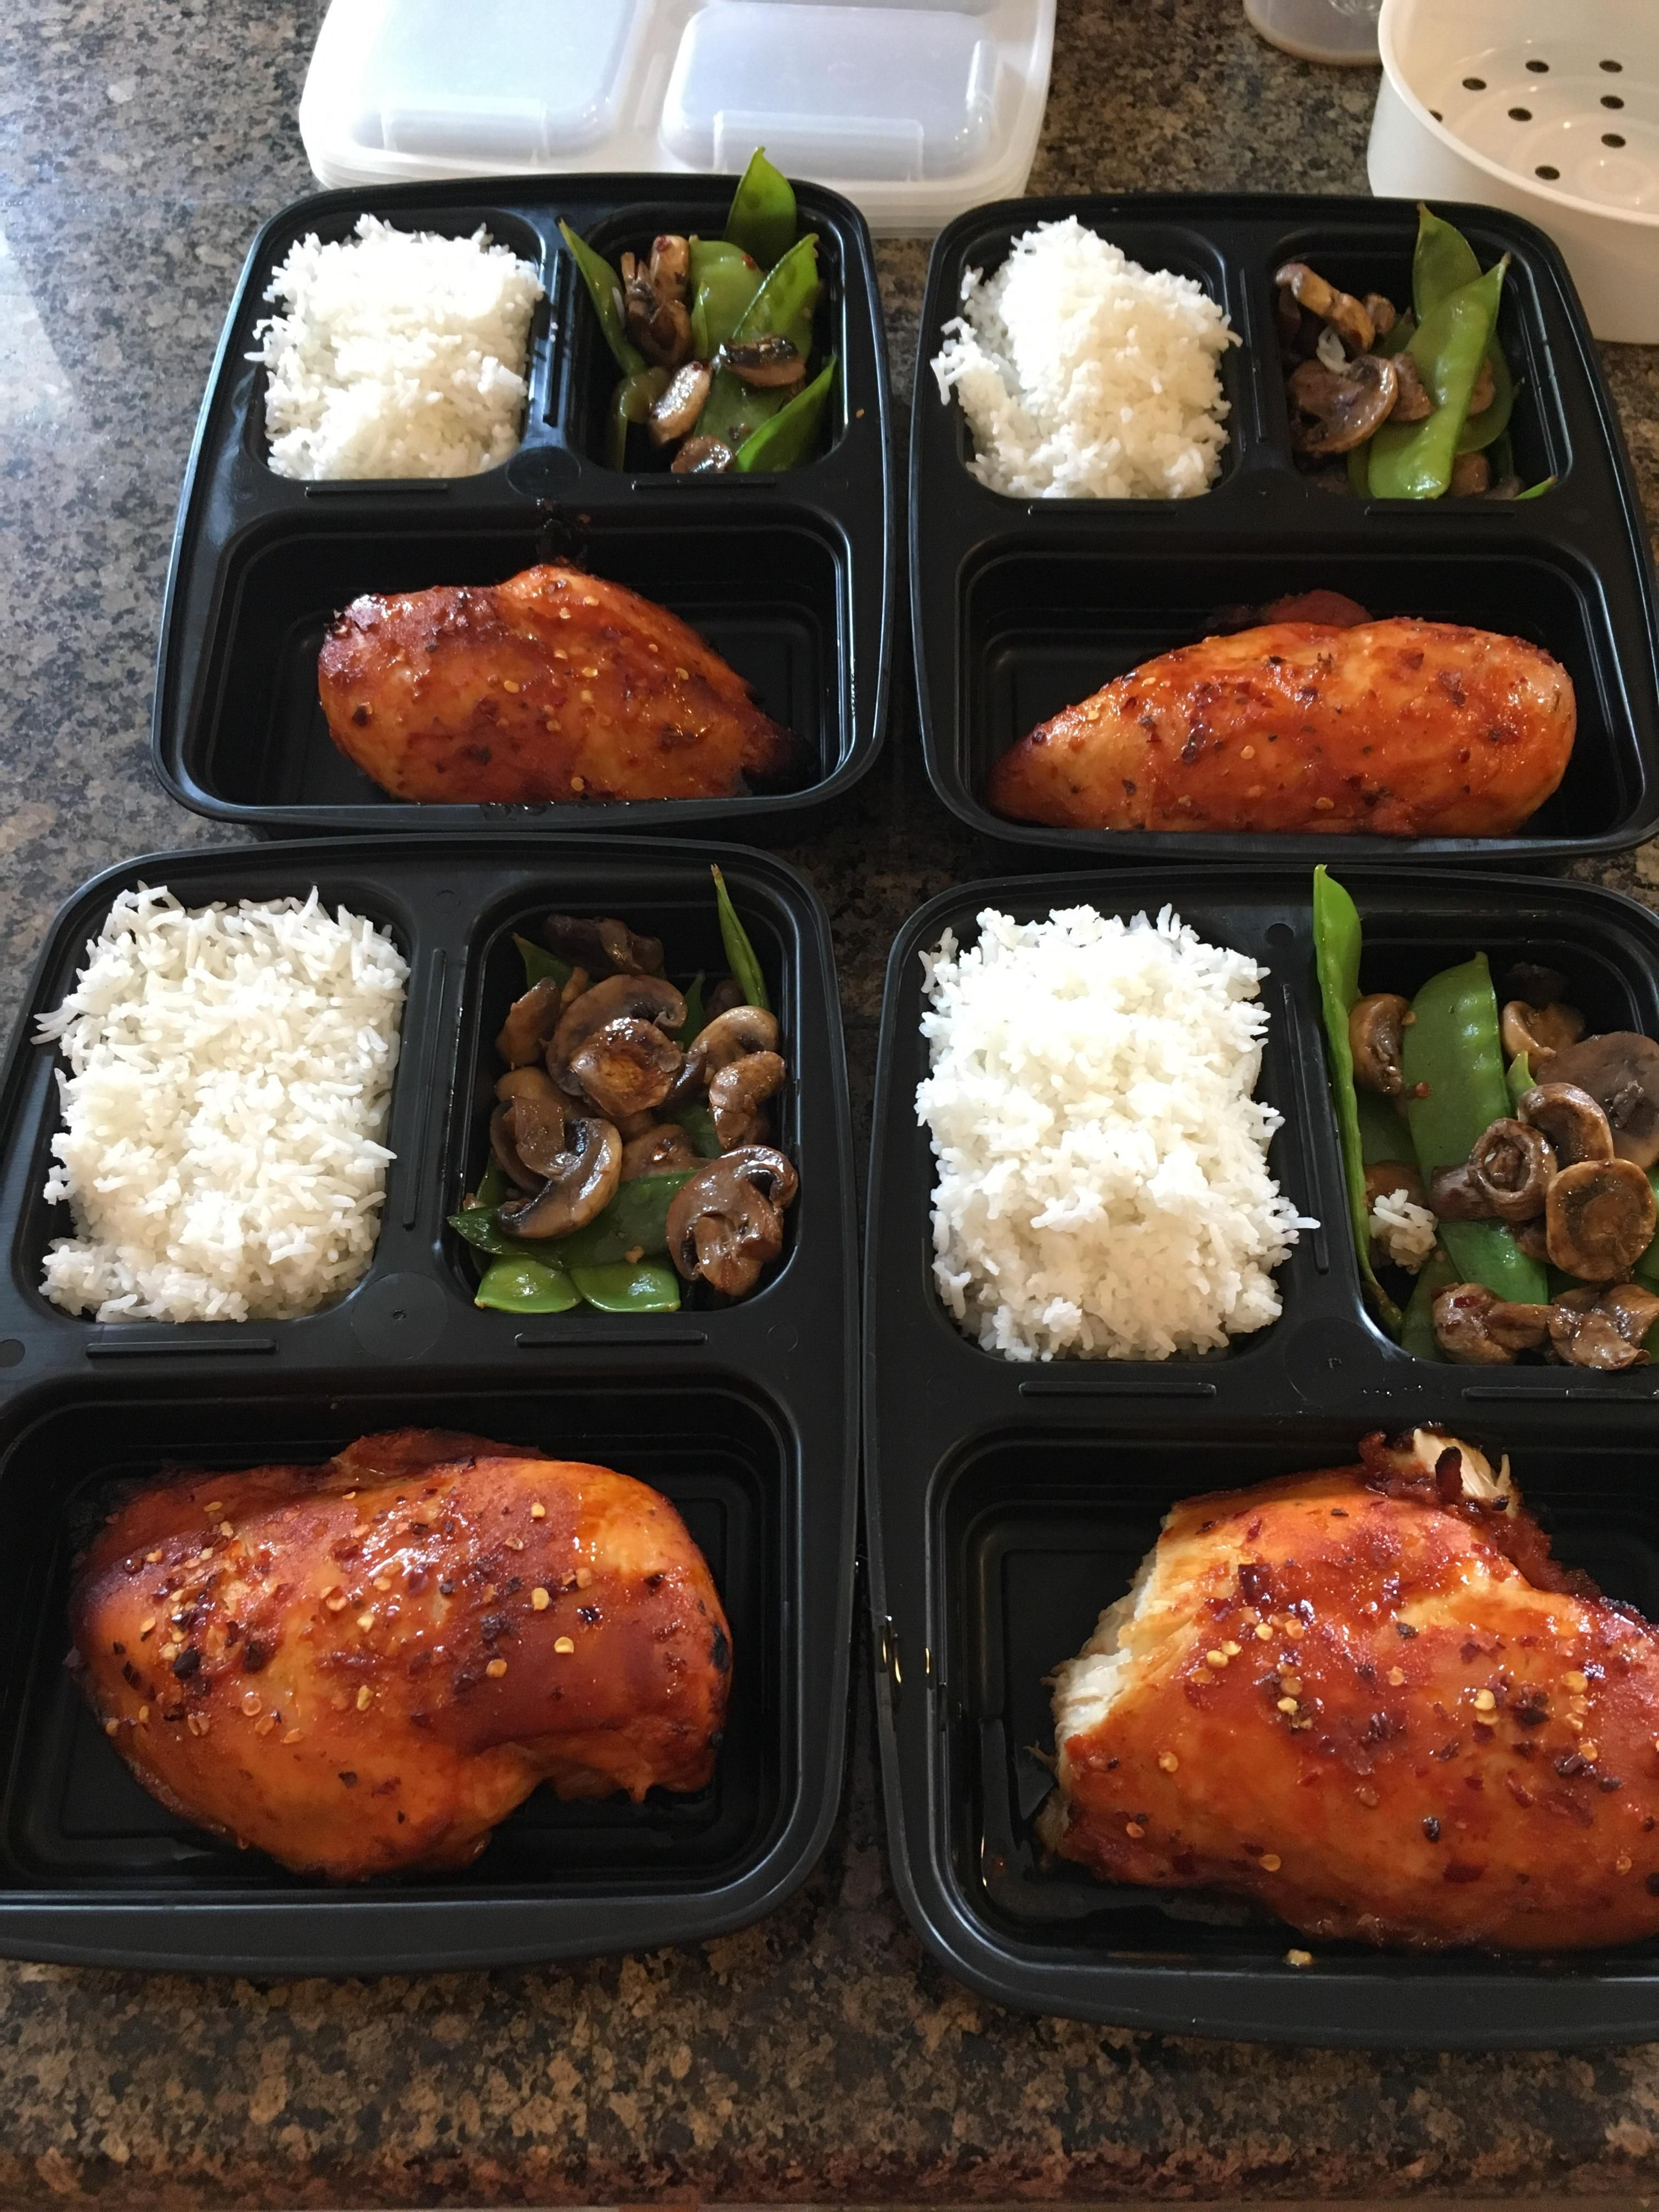 New To Reddit And Love This Sub For Great Meal Ideas Sweet Sriracha Chicken Meal Prep The Wife Made Mealp Meal Prep Sushi Recipes Easy Healthy Sushi Recipes